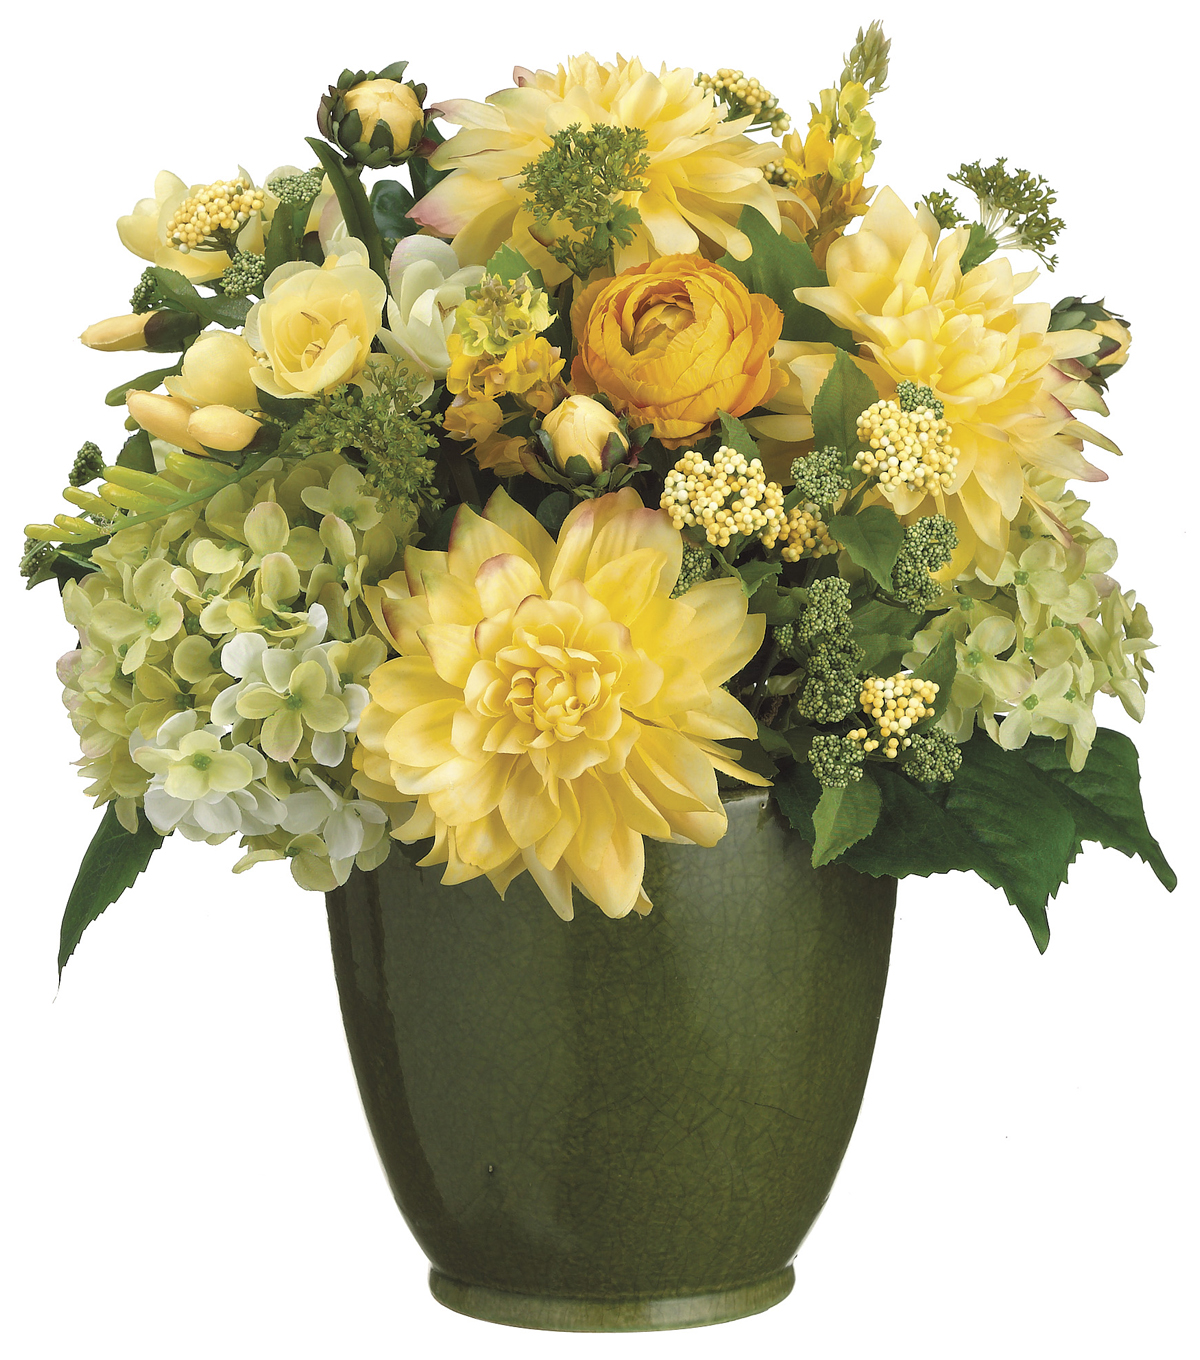 Bloom room luxe 16 dahlia hydrangea in ceramic yellow joann bloom room luxe 16u0027u0027 dahlia hydrangea freesia in izmirmasajfo